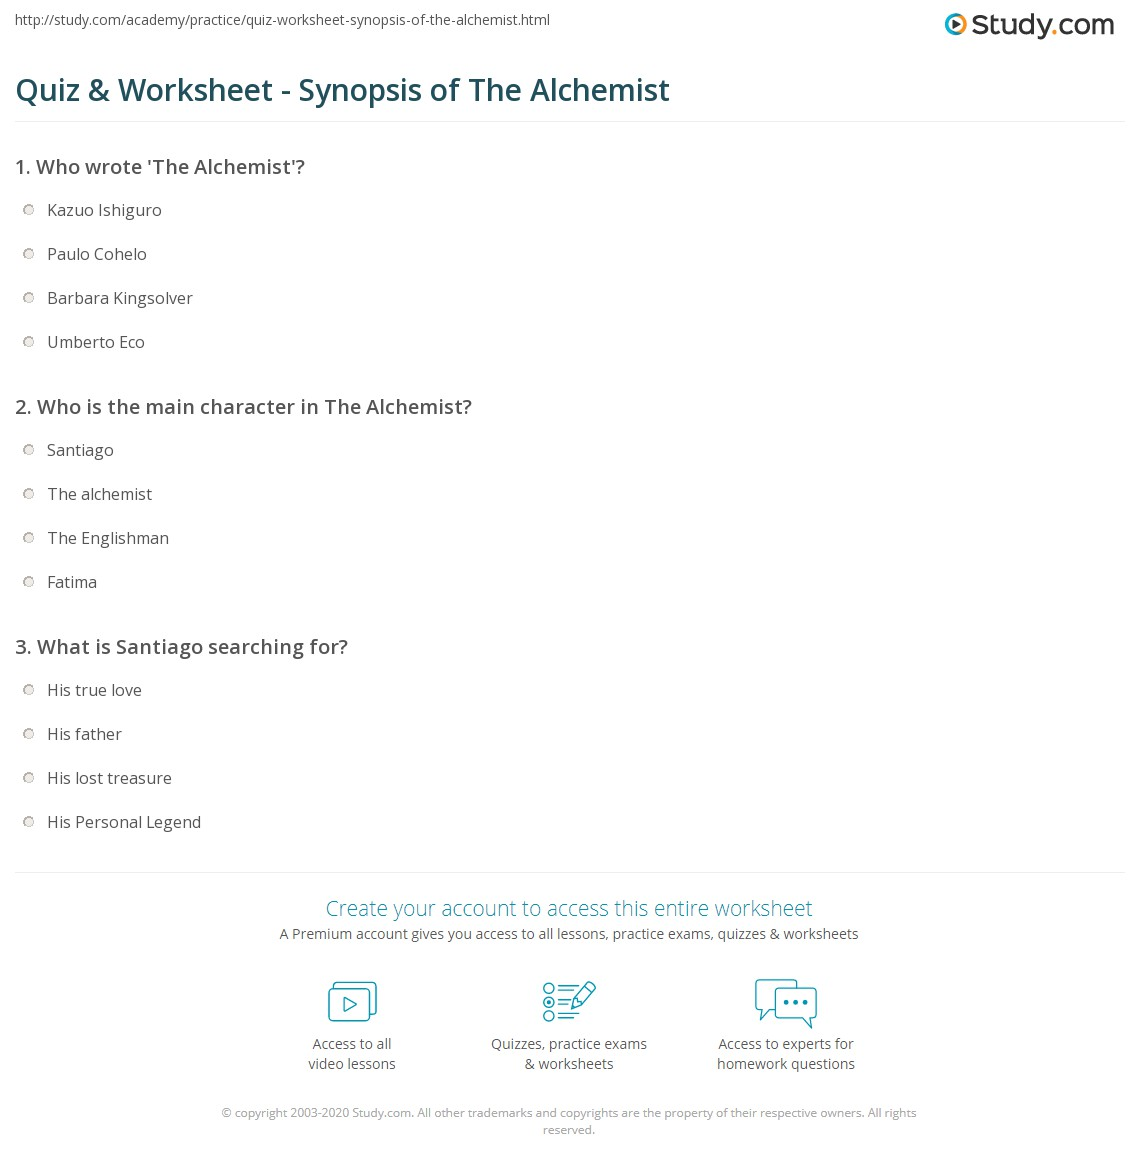 quiz worksheet synopsis of the alchemist com who is the main character in the alchemist